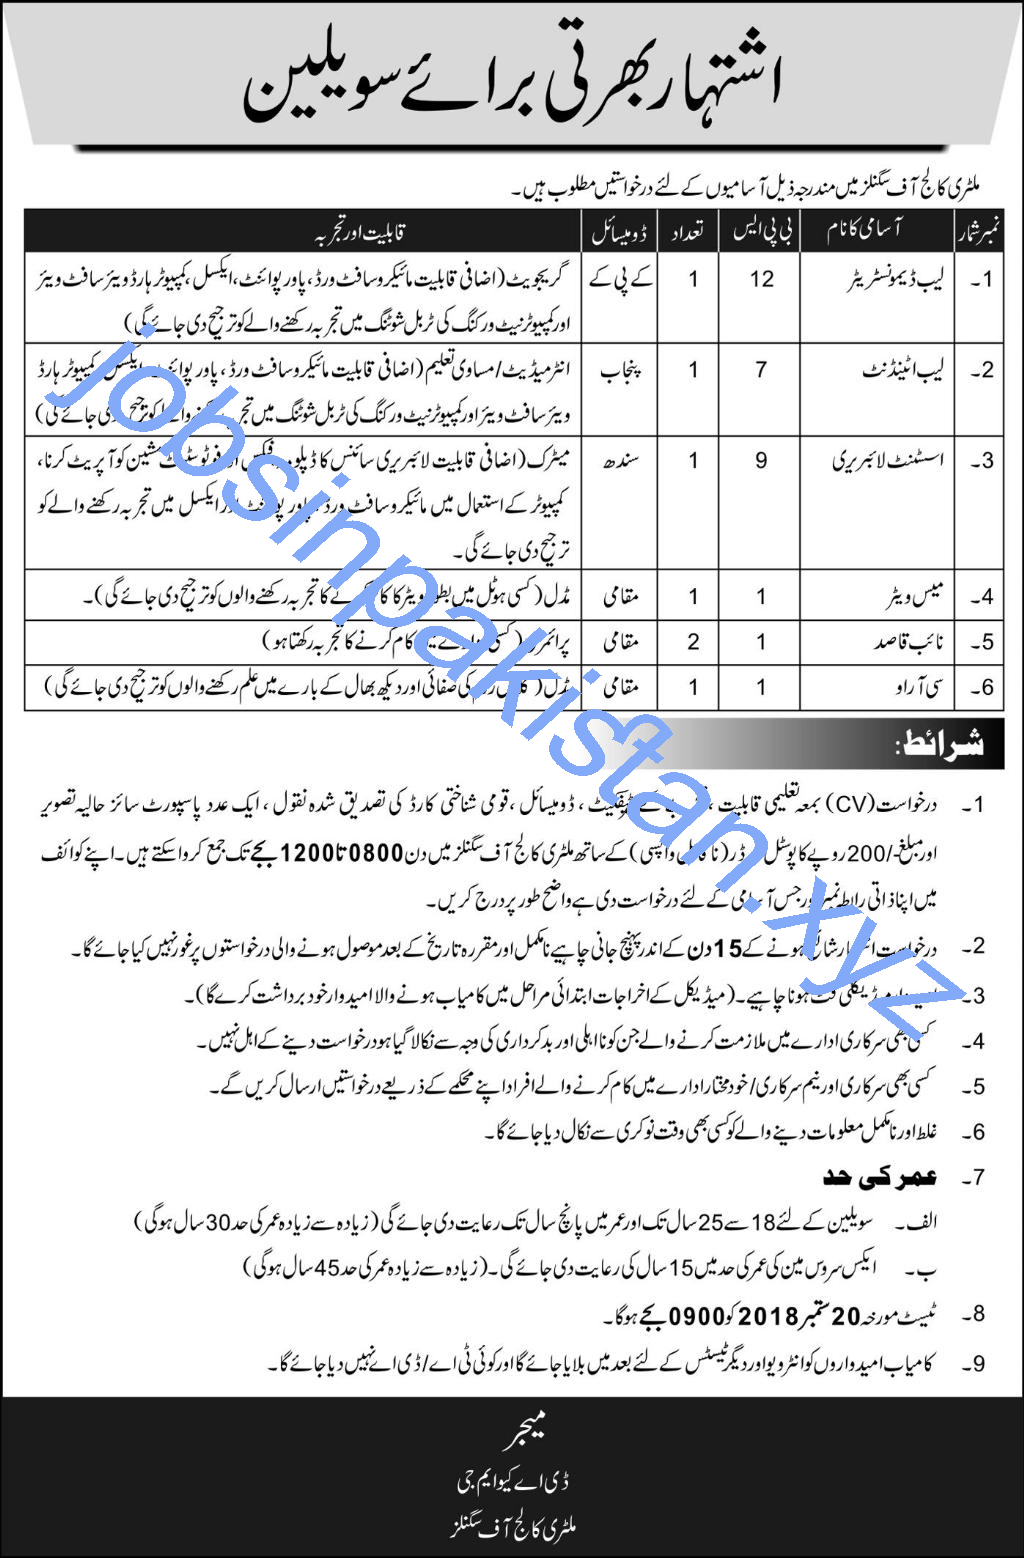 https://www.jobsinpakistan.xyz/2018/09/army-jobs-for-civilian-september-2018.html